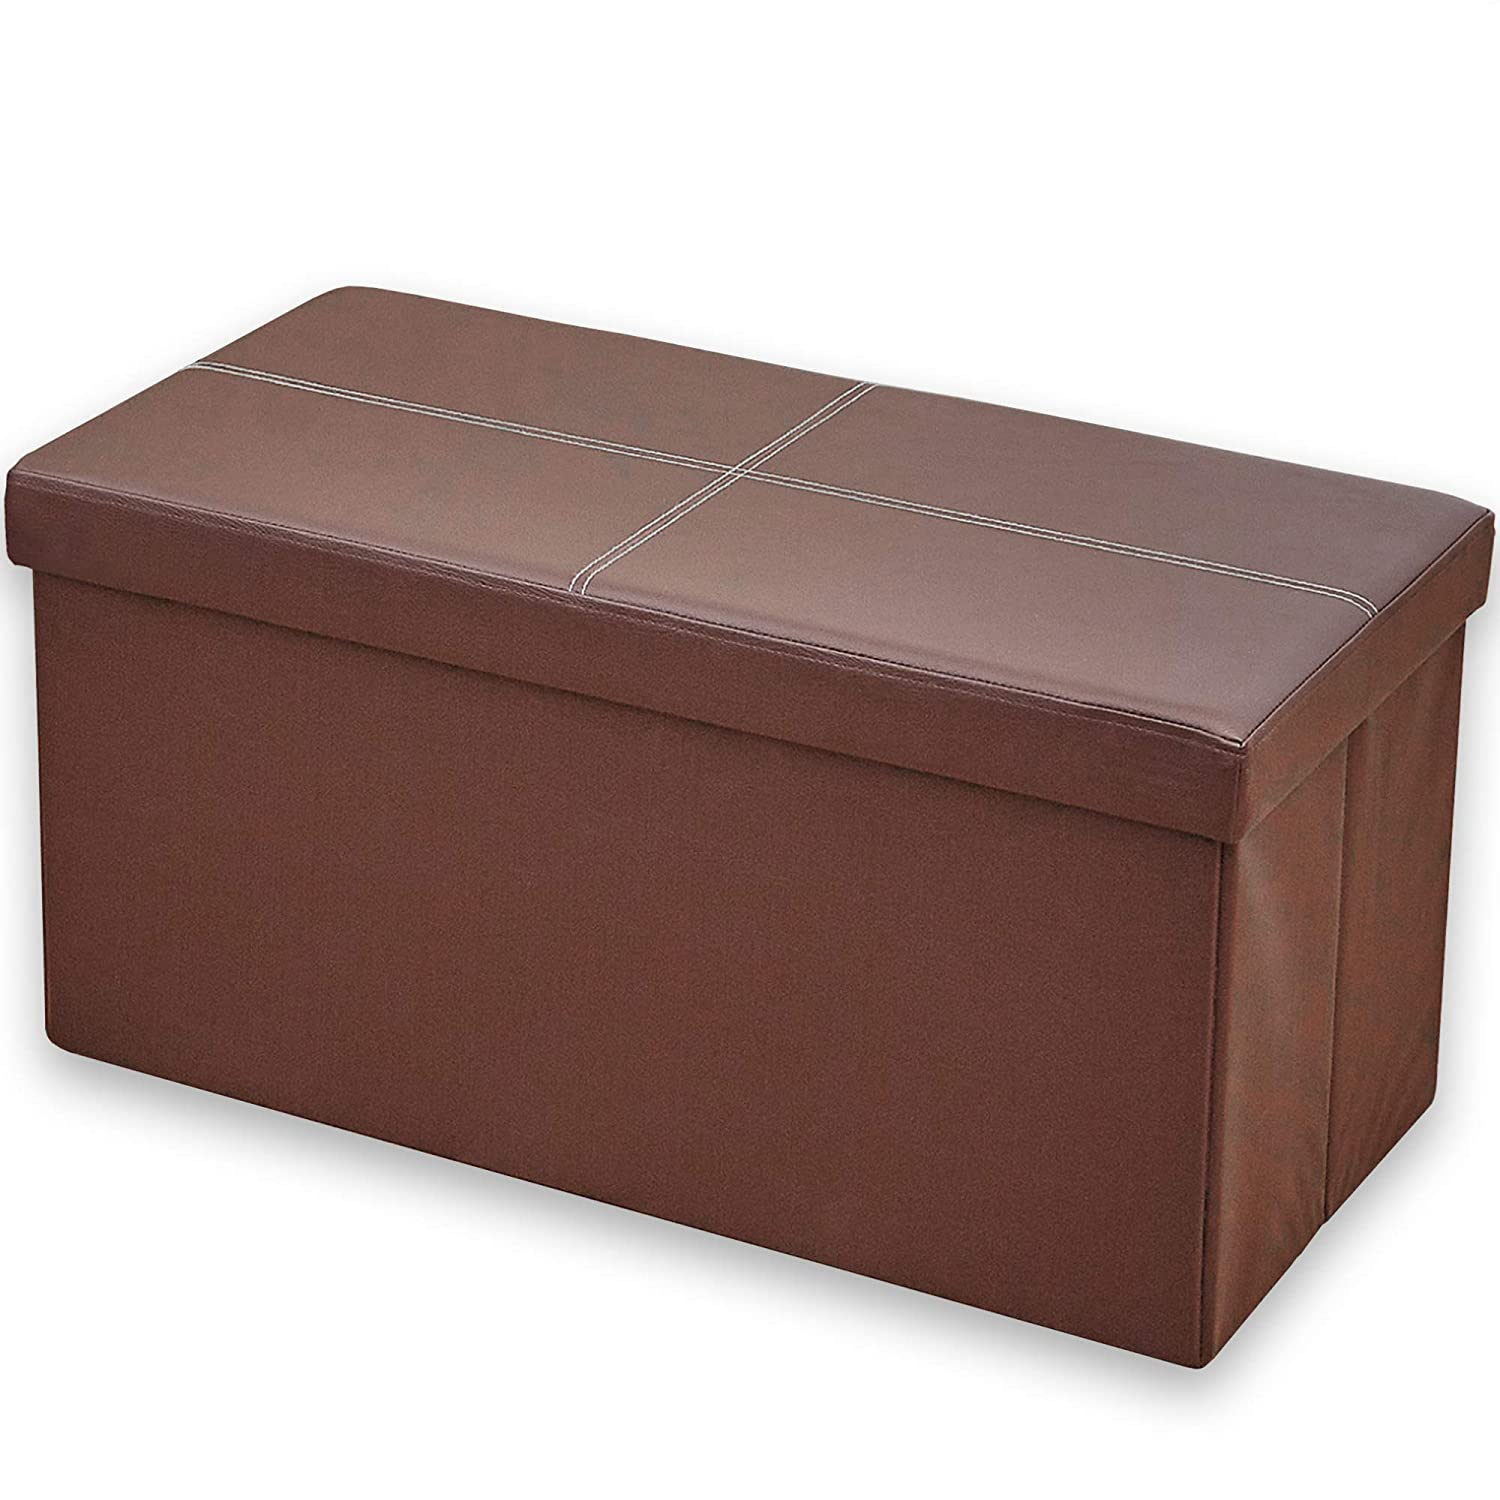 Andrew James Folding Ottoman Storage Box | Perfect for Bedrooms Living Rooms Hallways | 76cm L x 38cm W x 38cm | Faux Leather | Easy to Fold Away | Use as Footstool Bench or Pouffe